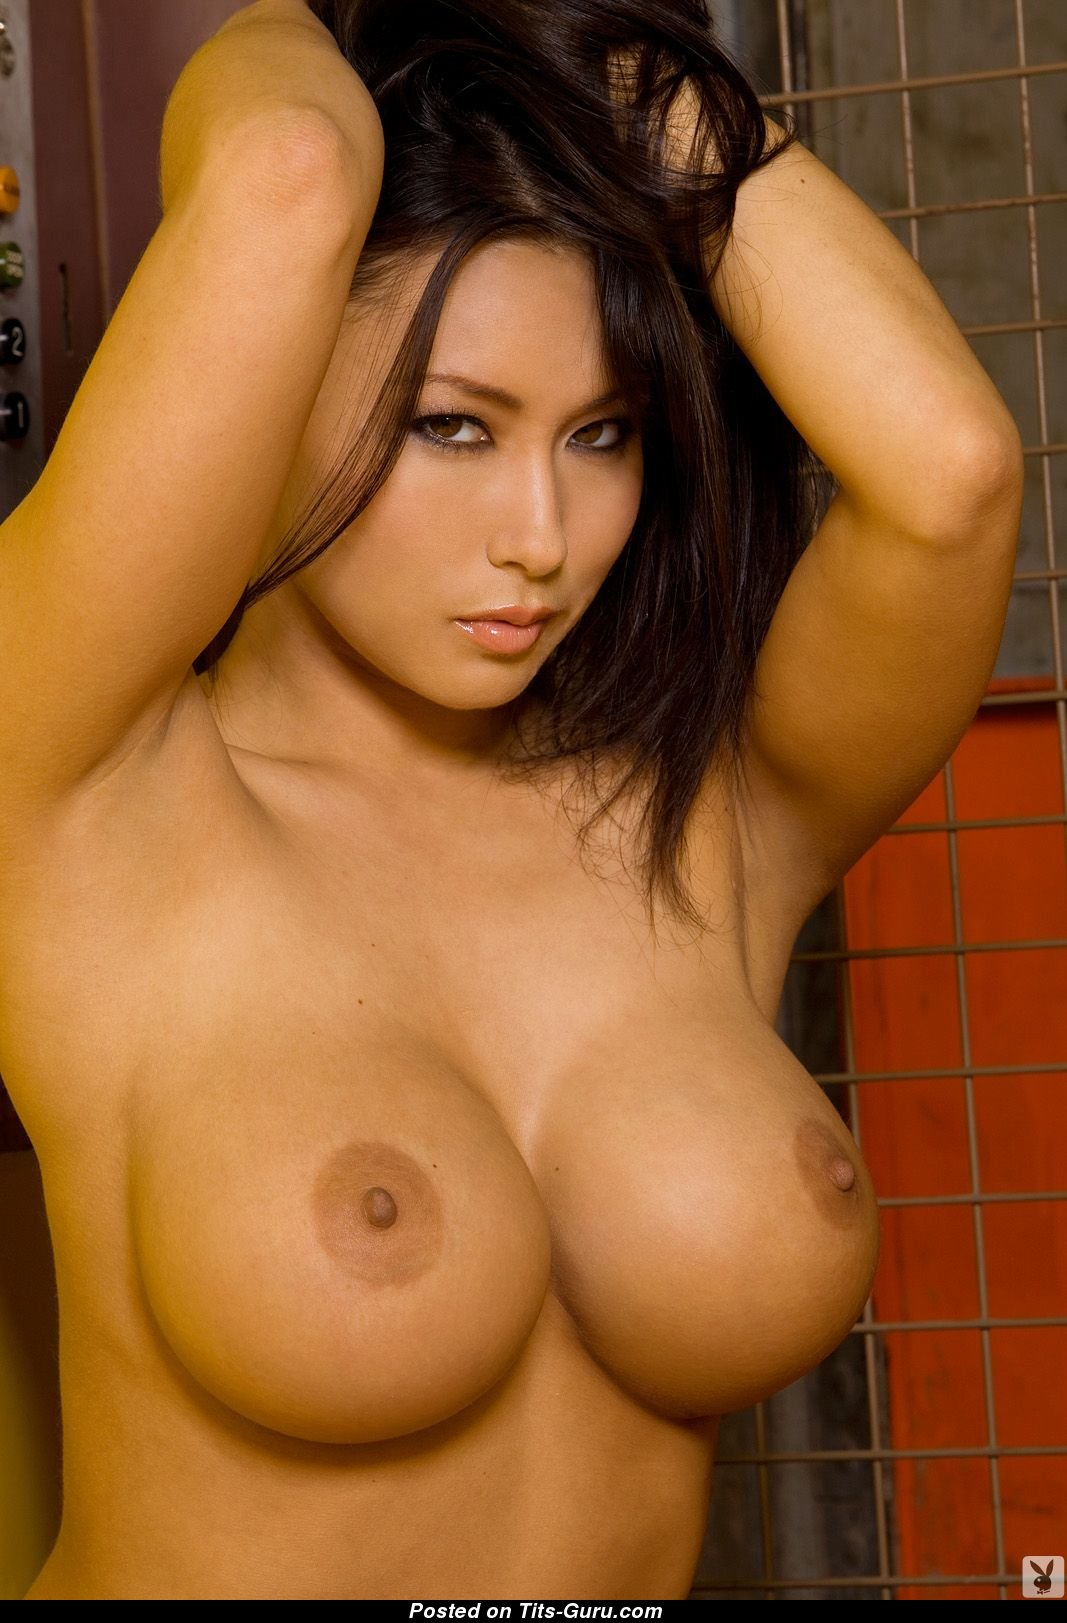 Julri Waters - Sexy Nude Asian With Big Fake Tits Picture  16042014 -7545